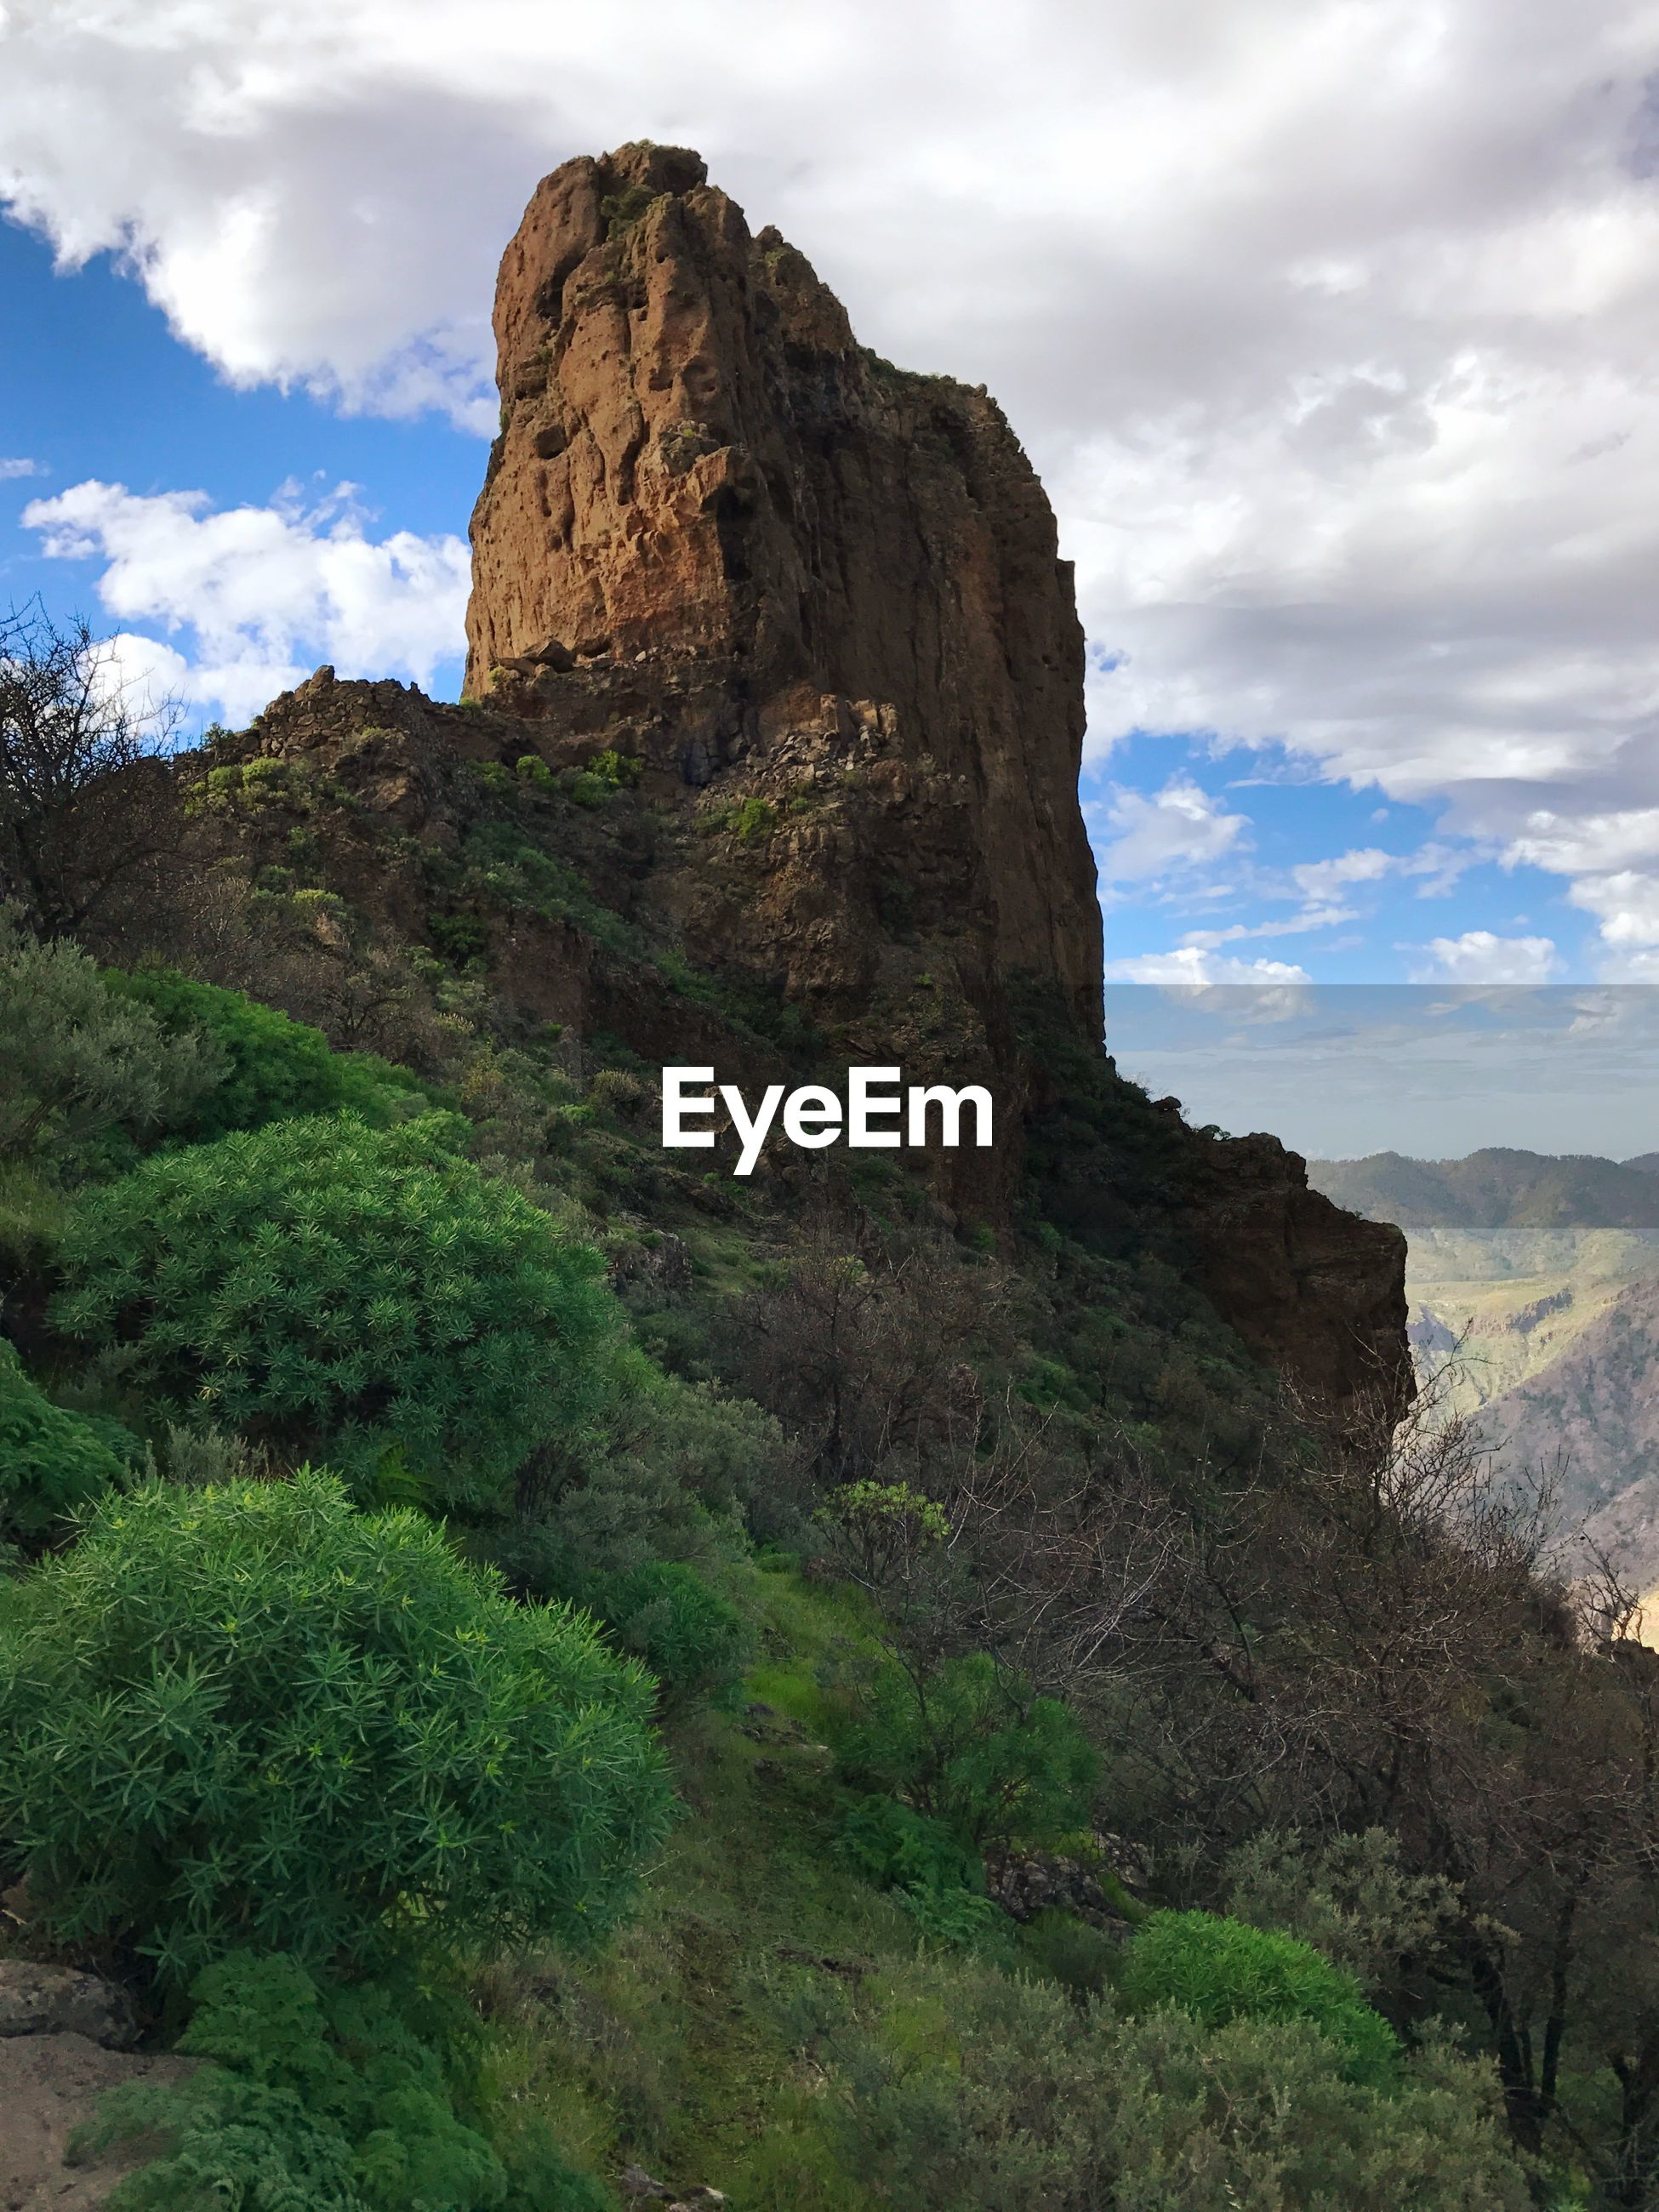 Gran Canary Island Gran Canaria Roque Bentayga Sky Cloud - Sky Rock - Object Landscape Mountain Nature Day Outdoors Beauty In Nature No People Low Angle View Scenics